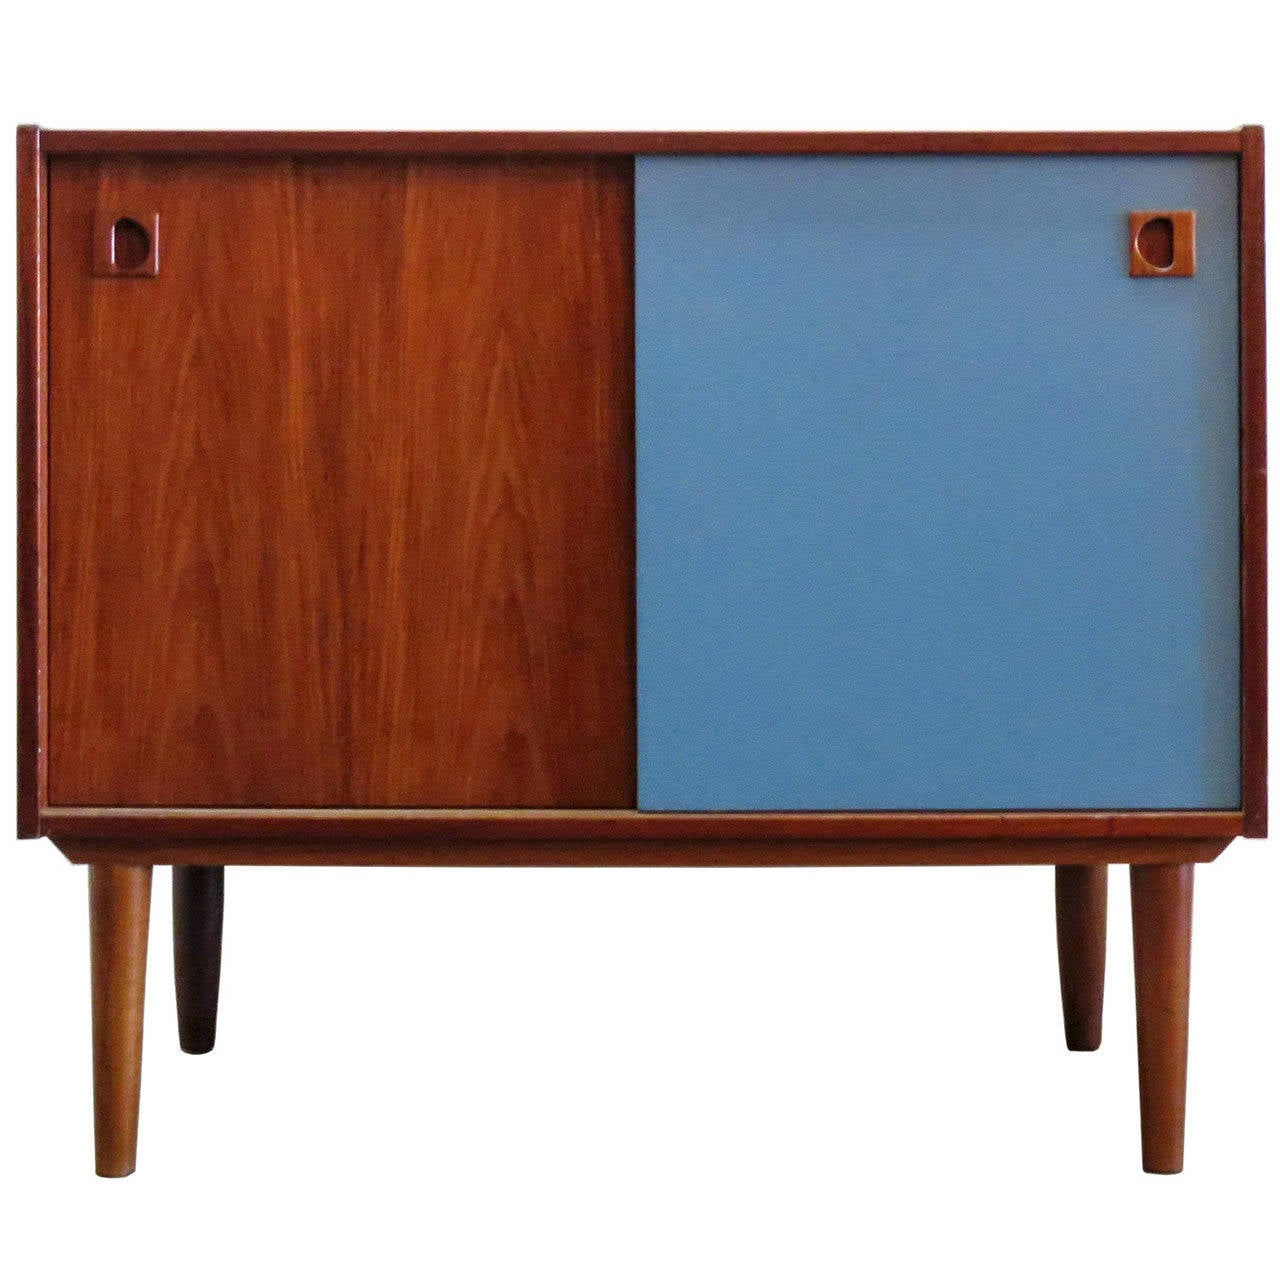 Teak And More modern teak sideboard at 1stdibs